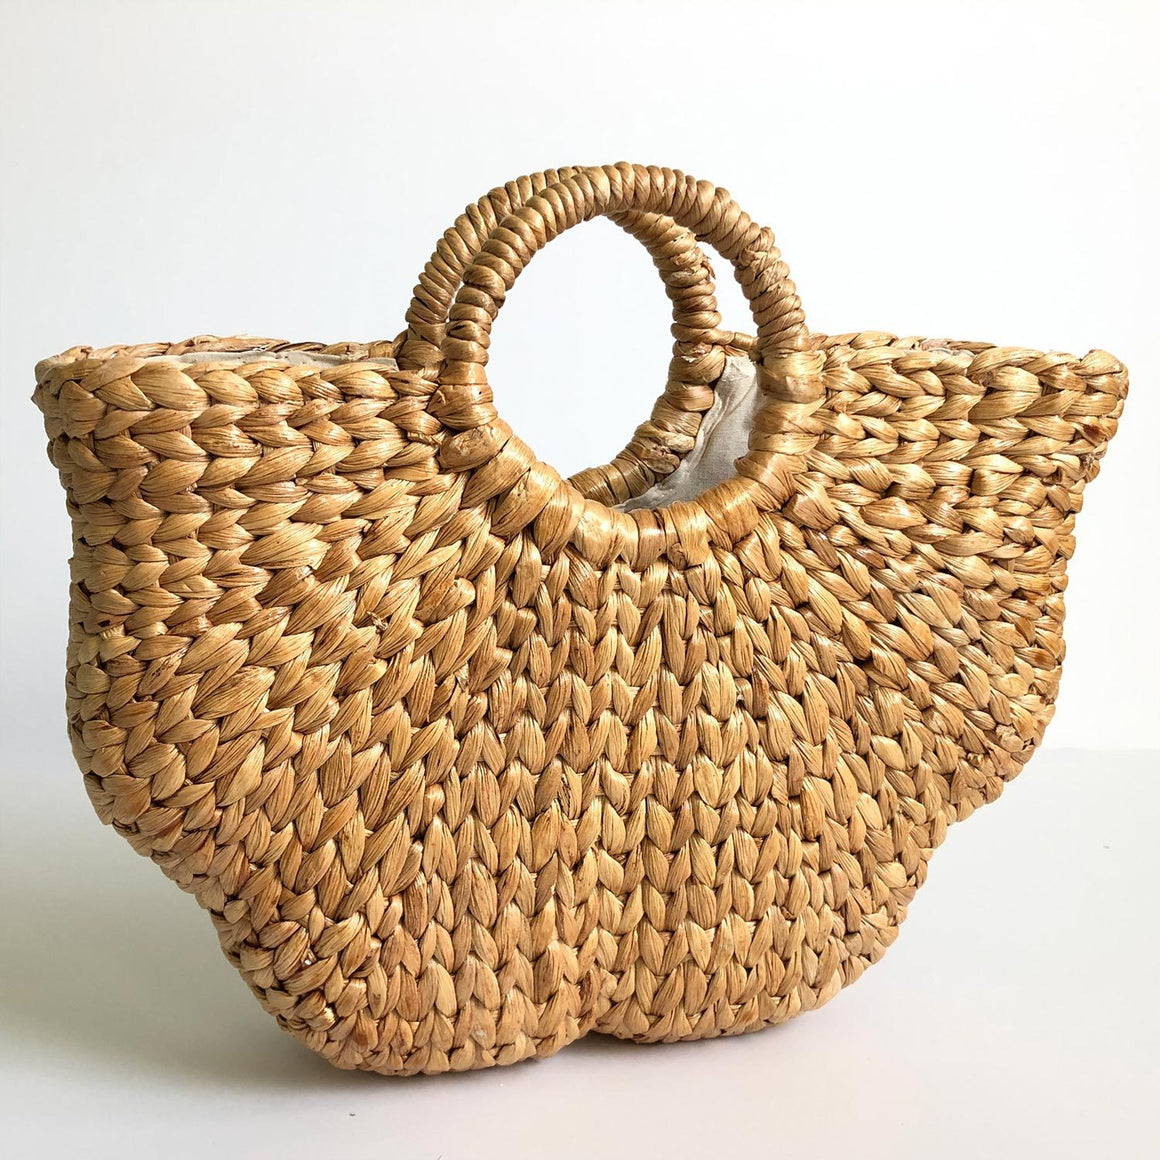 Woven Water Hyacinth Handbag With Handles